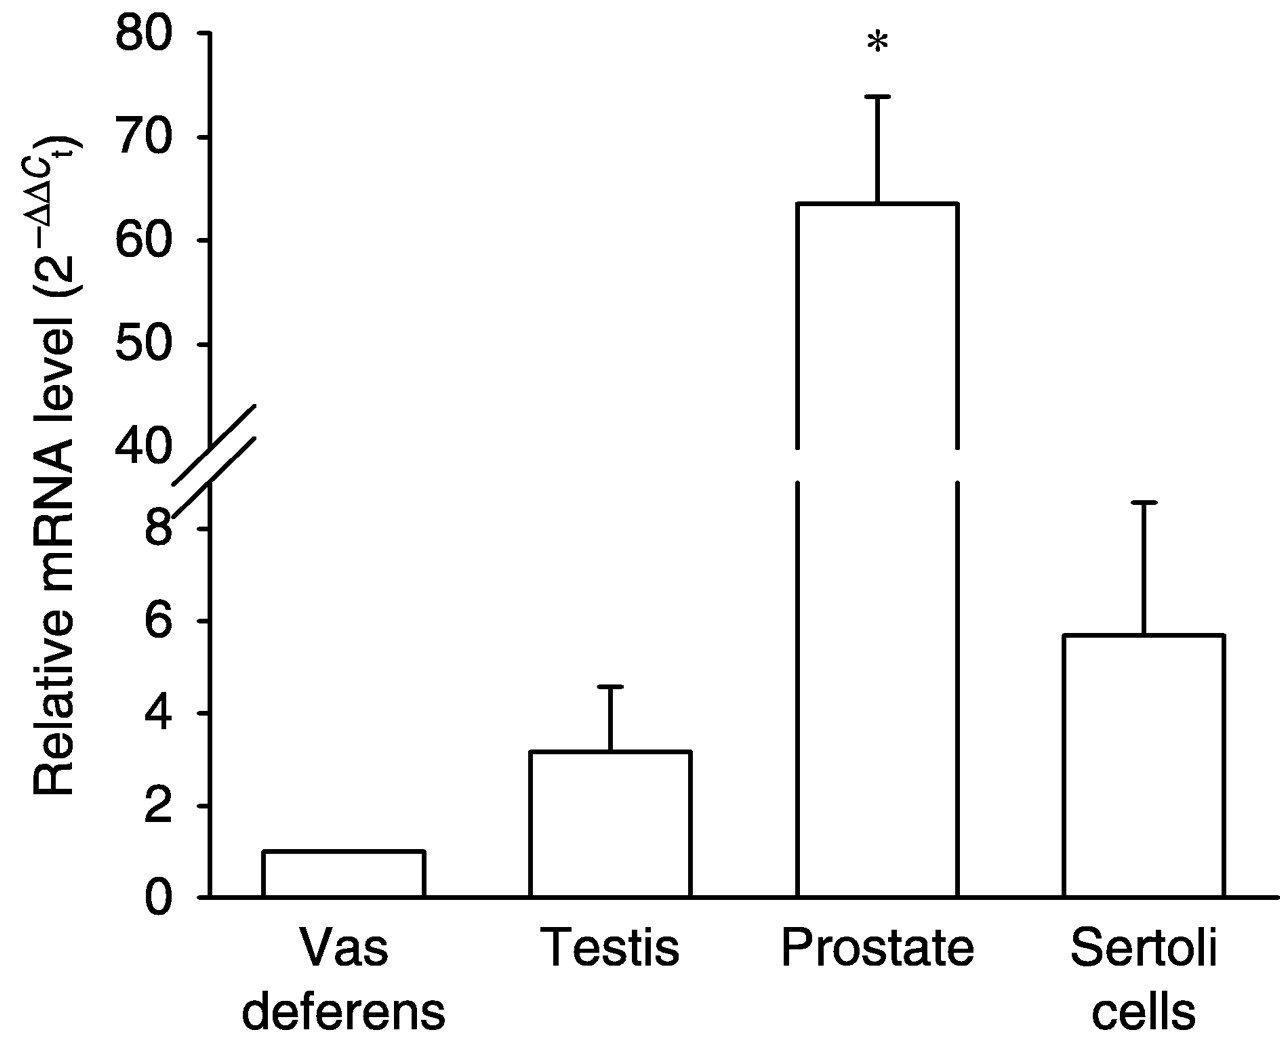 Locally Produced Relaxin May Affect Testis And Vas Deferens Function